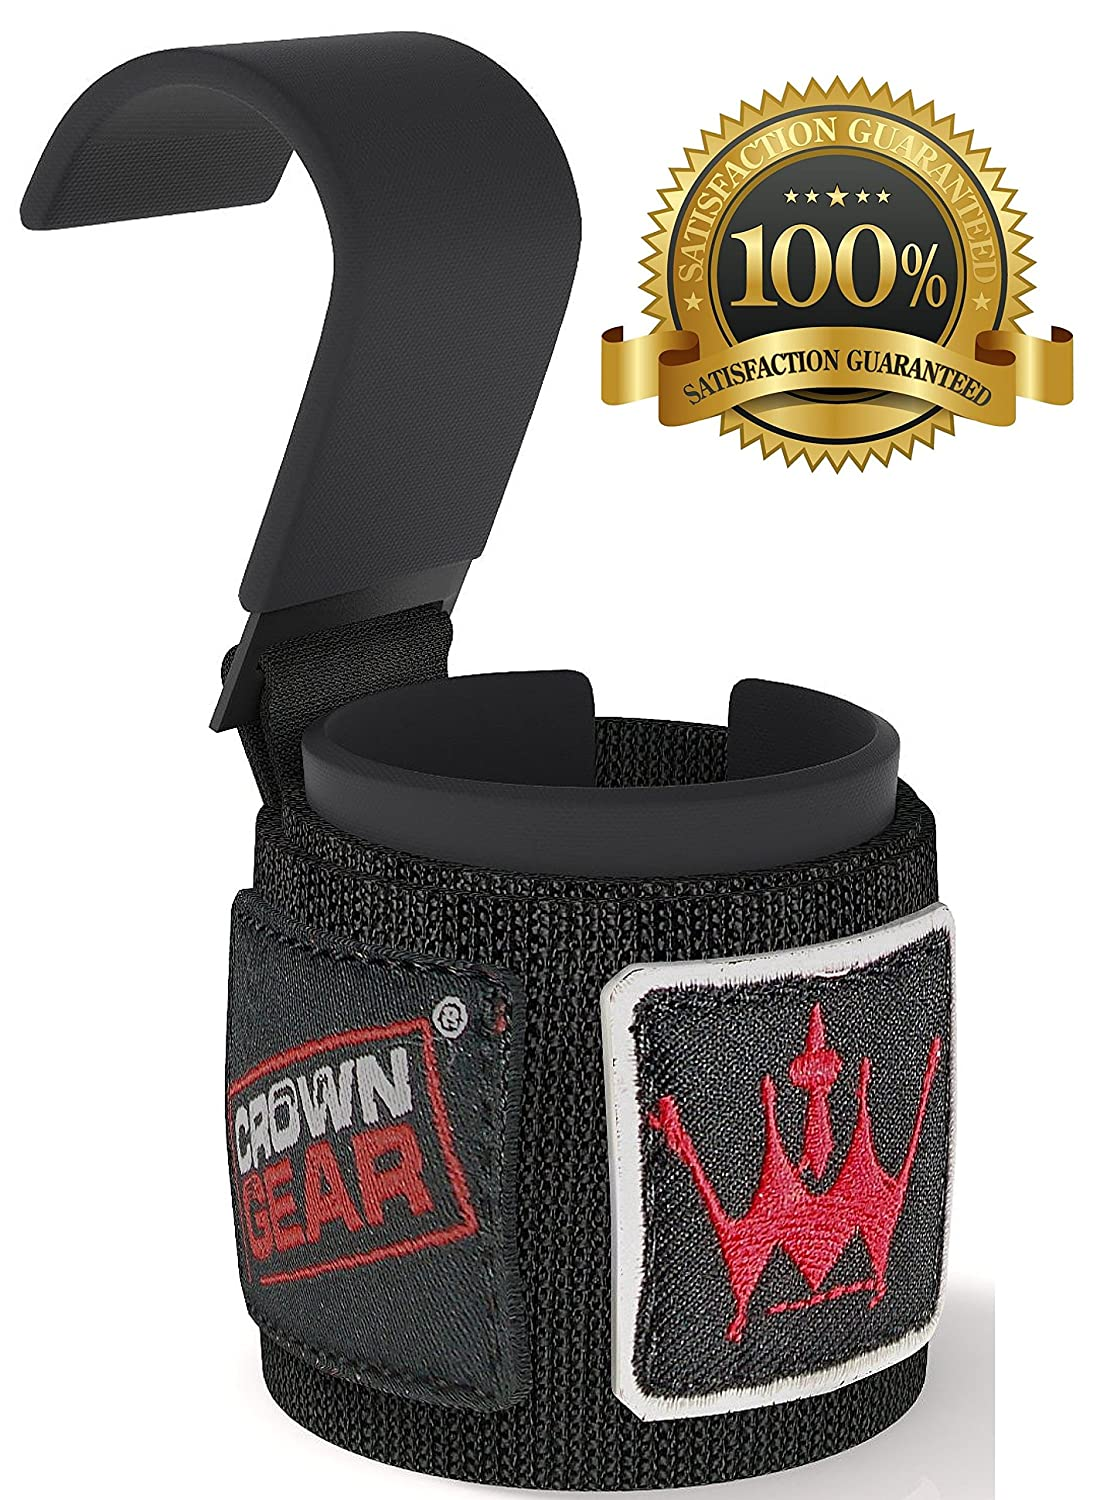 The top 5 best lifting hooks of 2018 - Crown Gear hooks